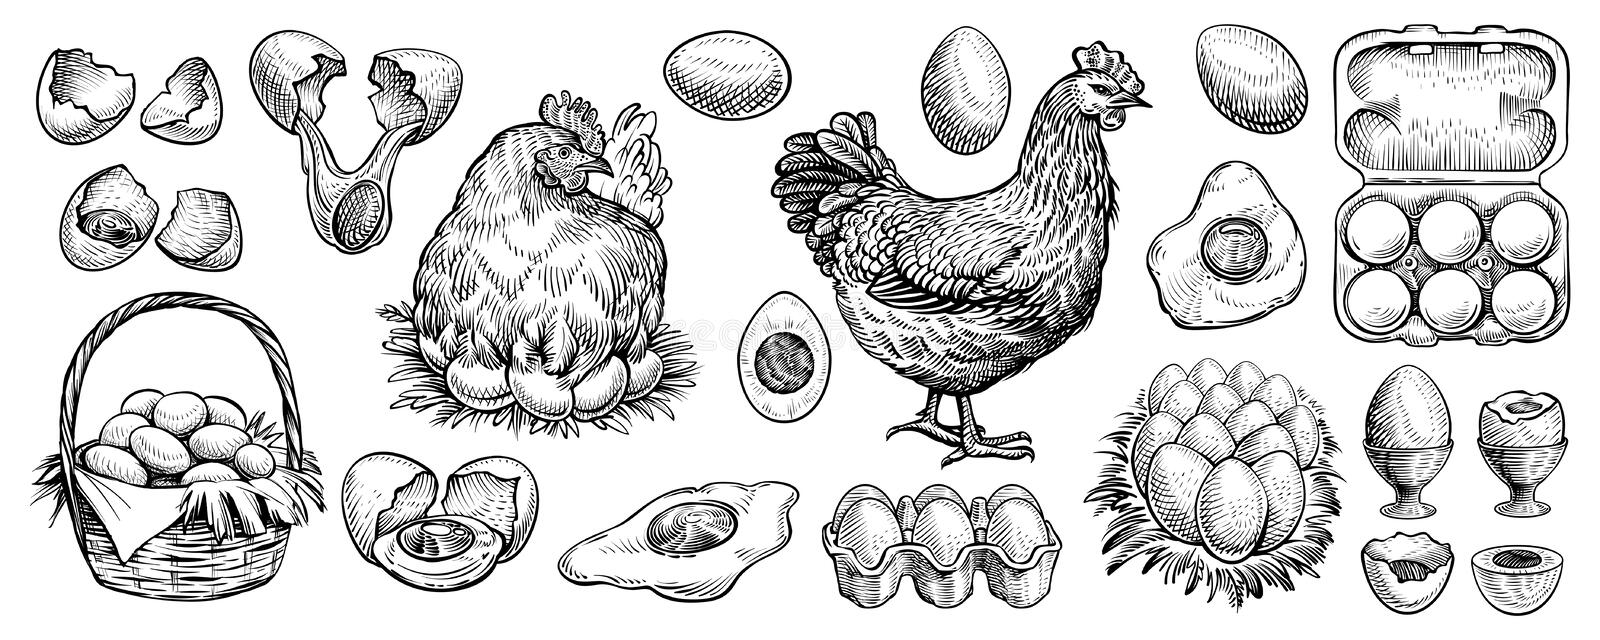 Hen Silhouette Png, Vector, PSD, and Clipart With Transparent Background  for Free Download | Pngtree